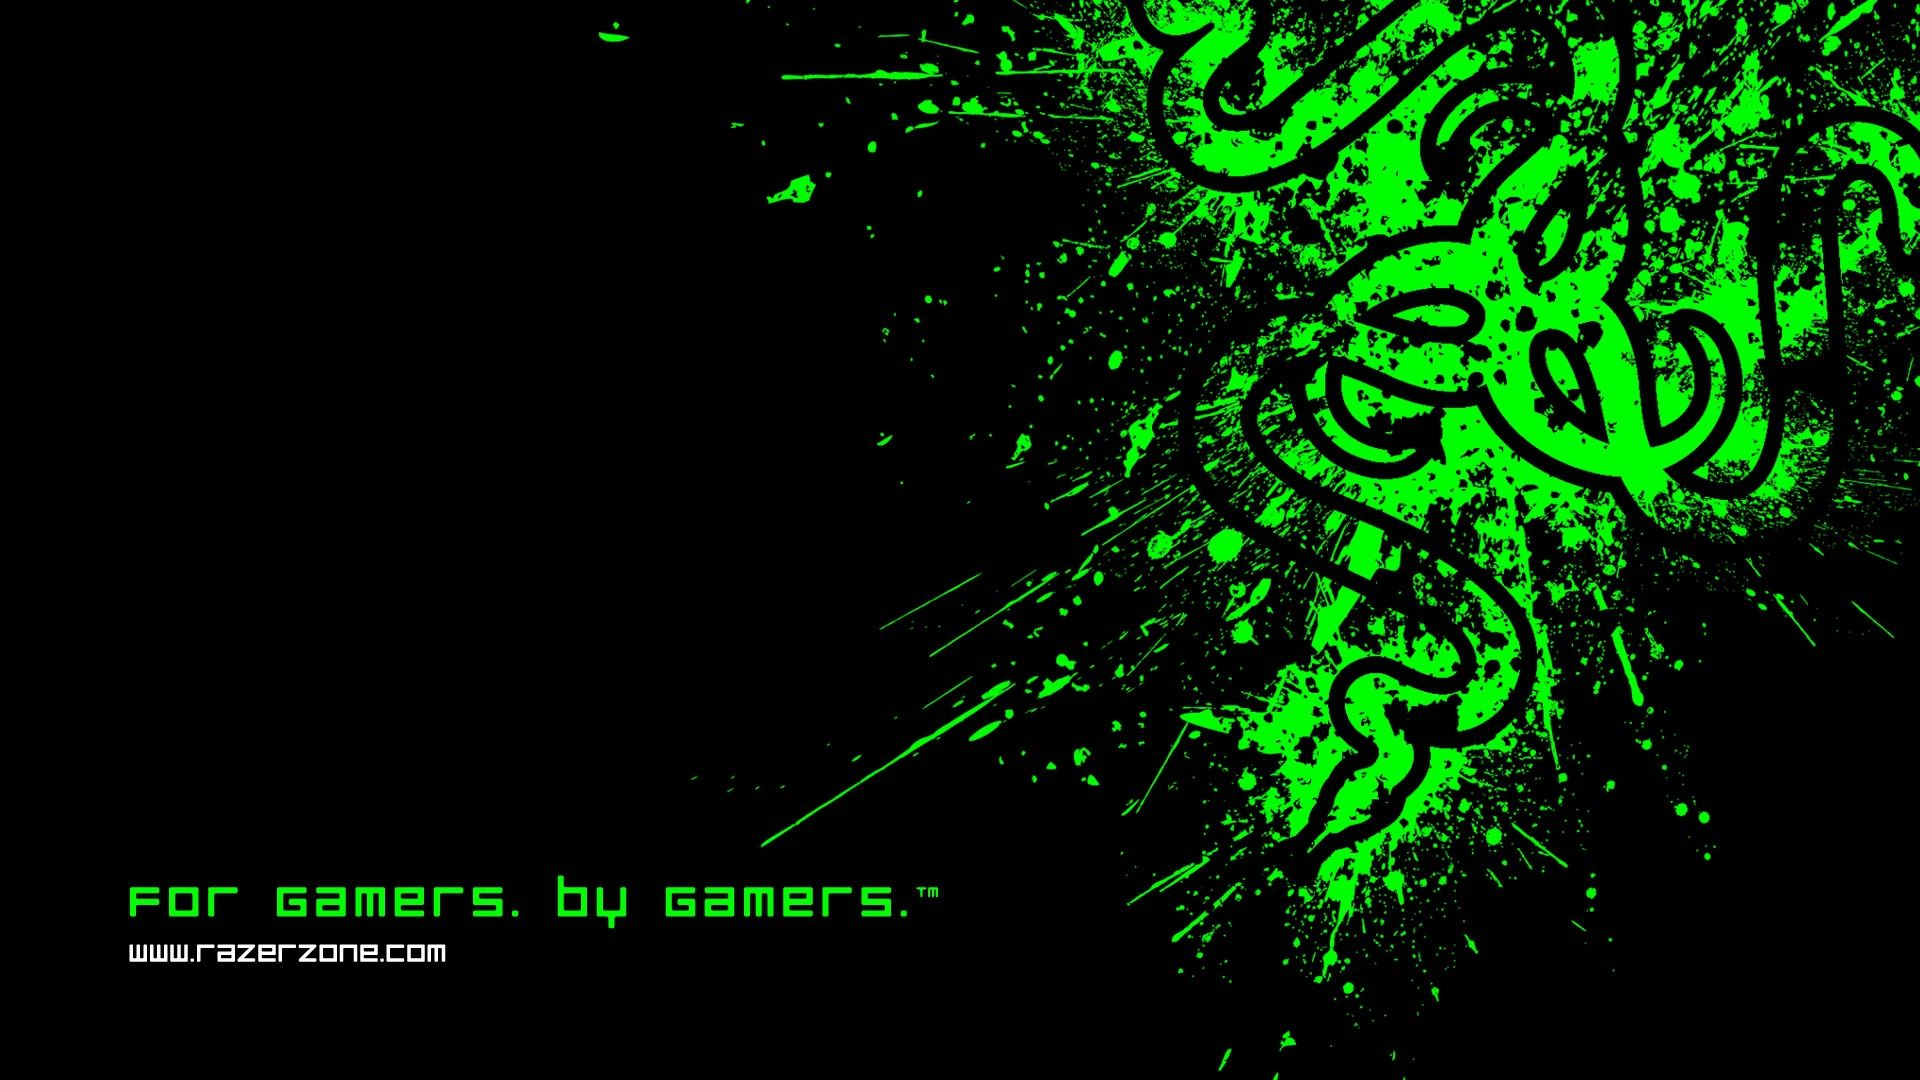 Wallpaper 1920x1080 Full Hd 1080p 1080i Razer Symbol Logo Black